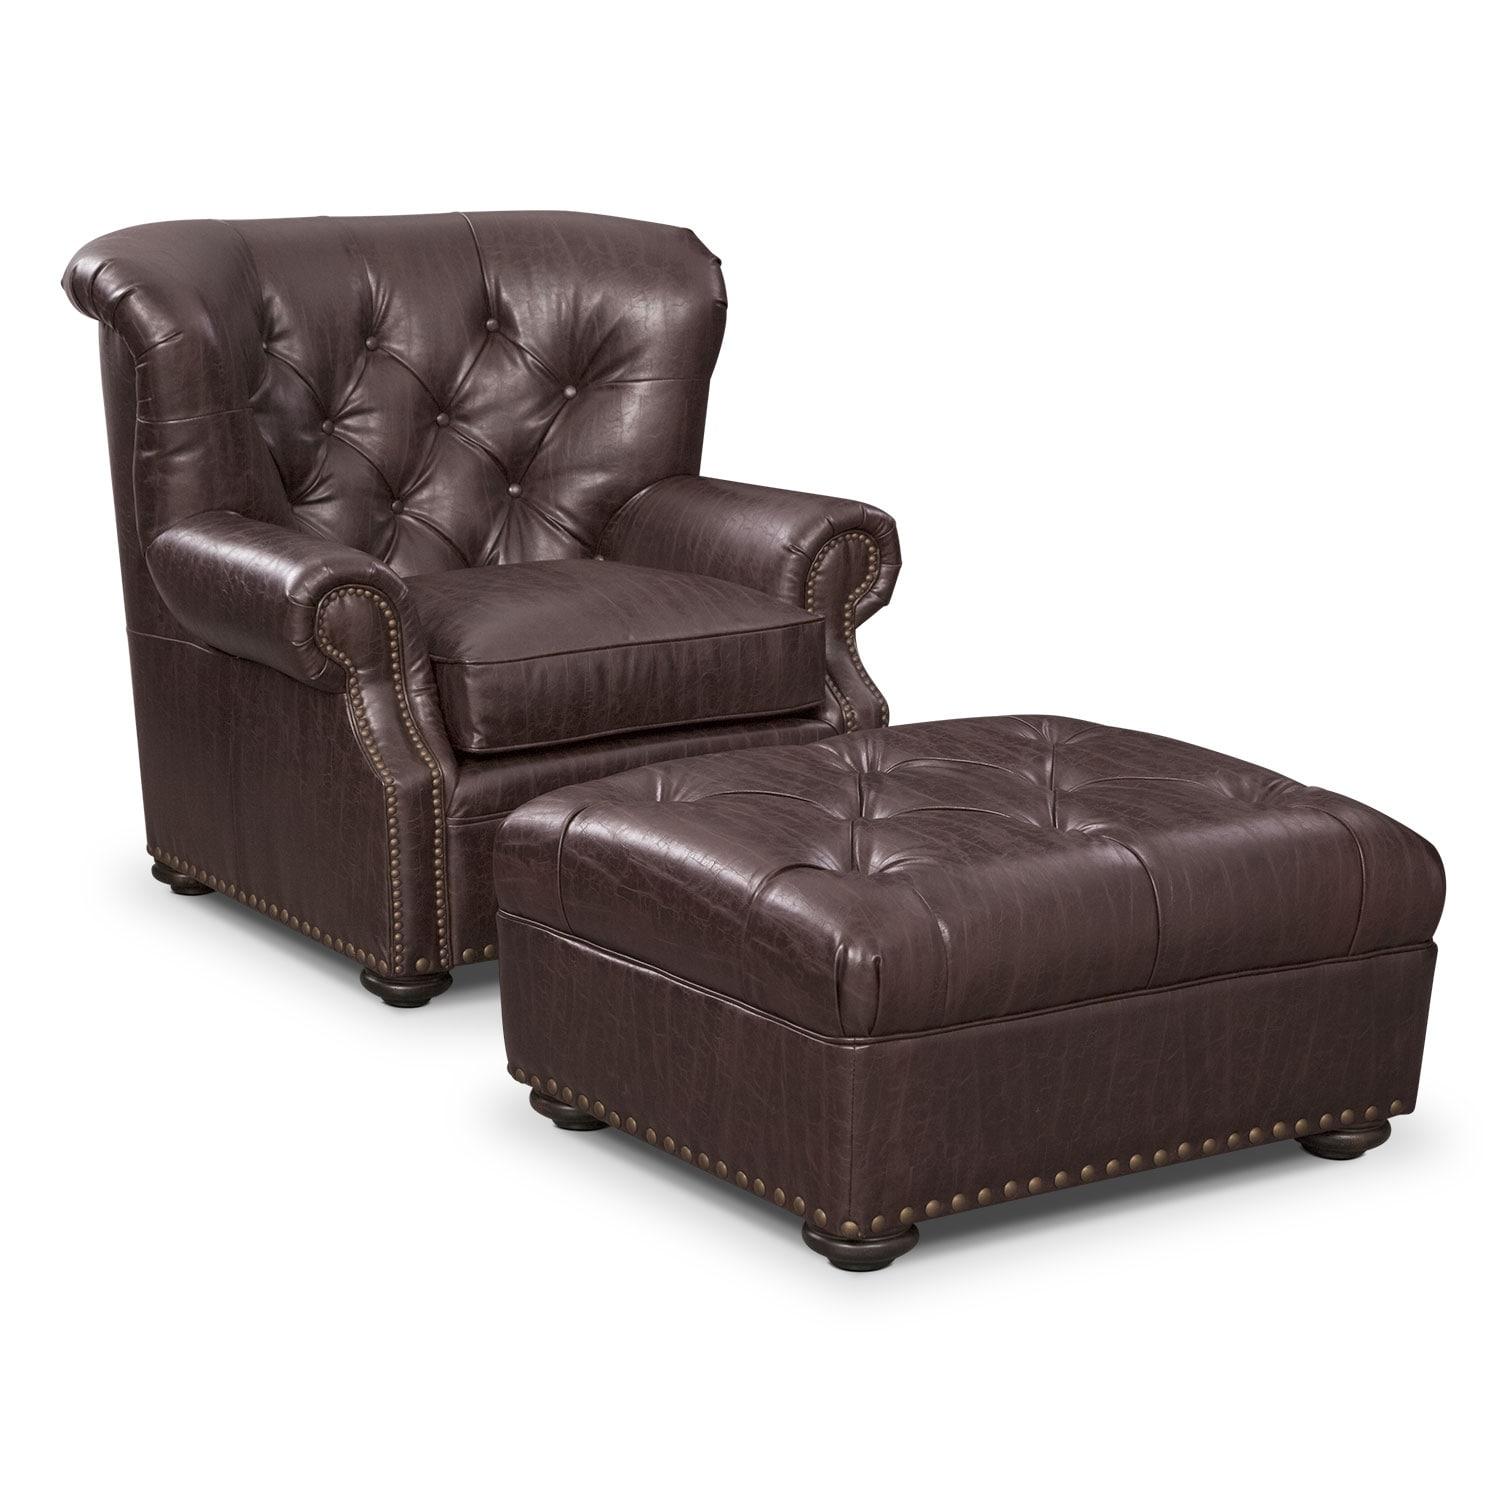 Cabot Chair and Ottoman